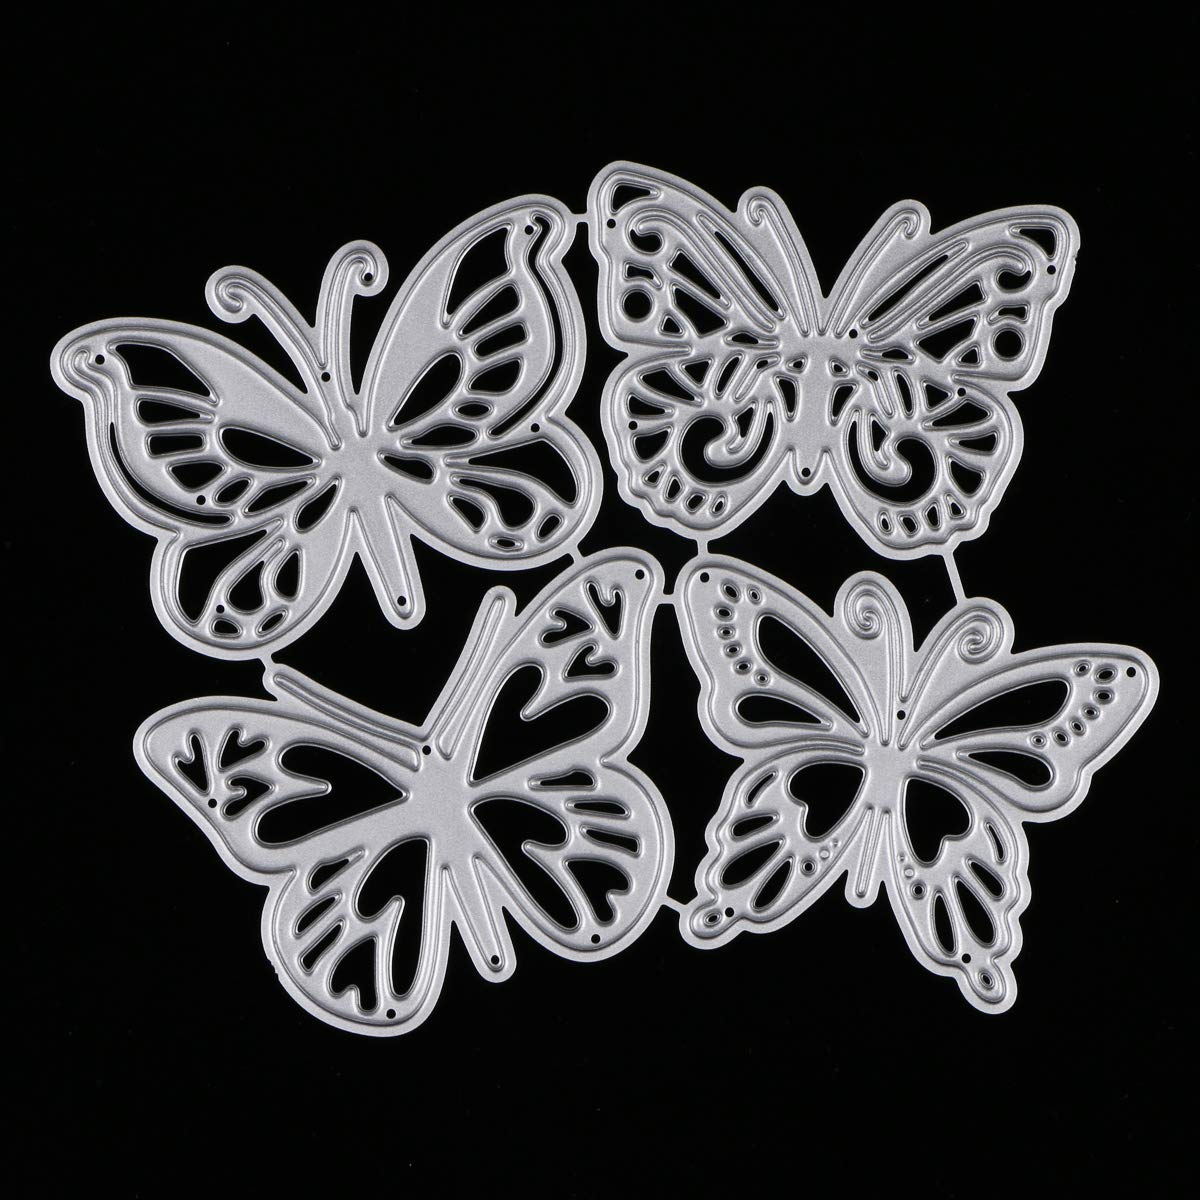 Flydragon Metal Cutting Dies Stencils MikiMiqi Criss-Cross Metal Flydragon Embossing Scrapbooking Dies Cuts Handmade Stencils Template Embossing for Card Scrapbooking Craft Paper Decor